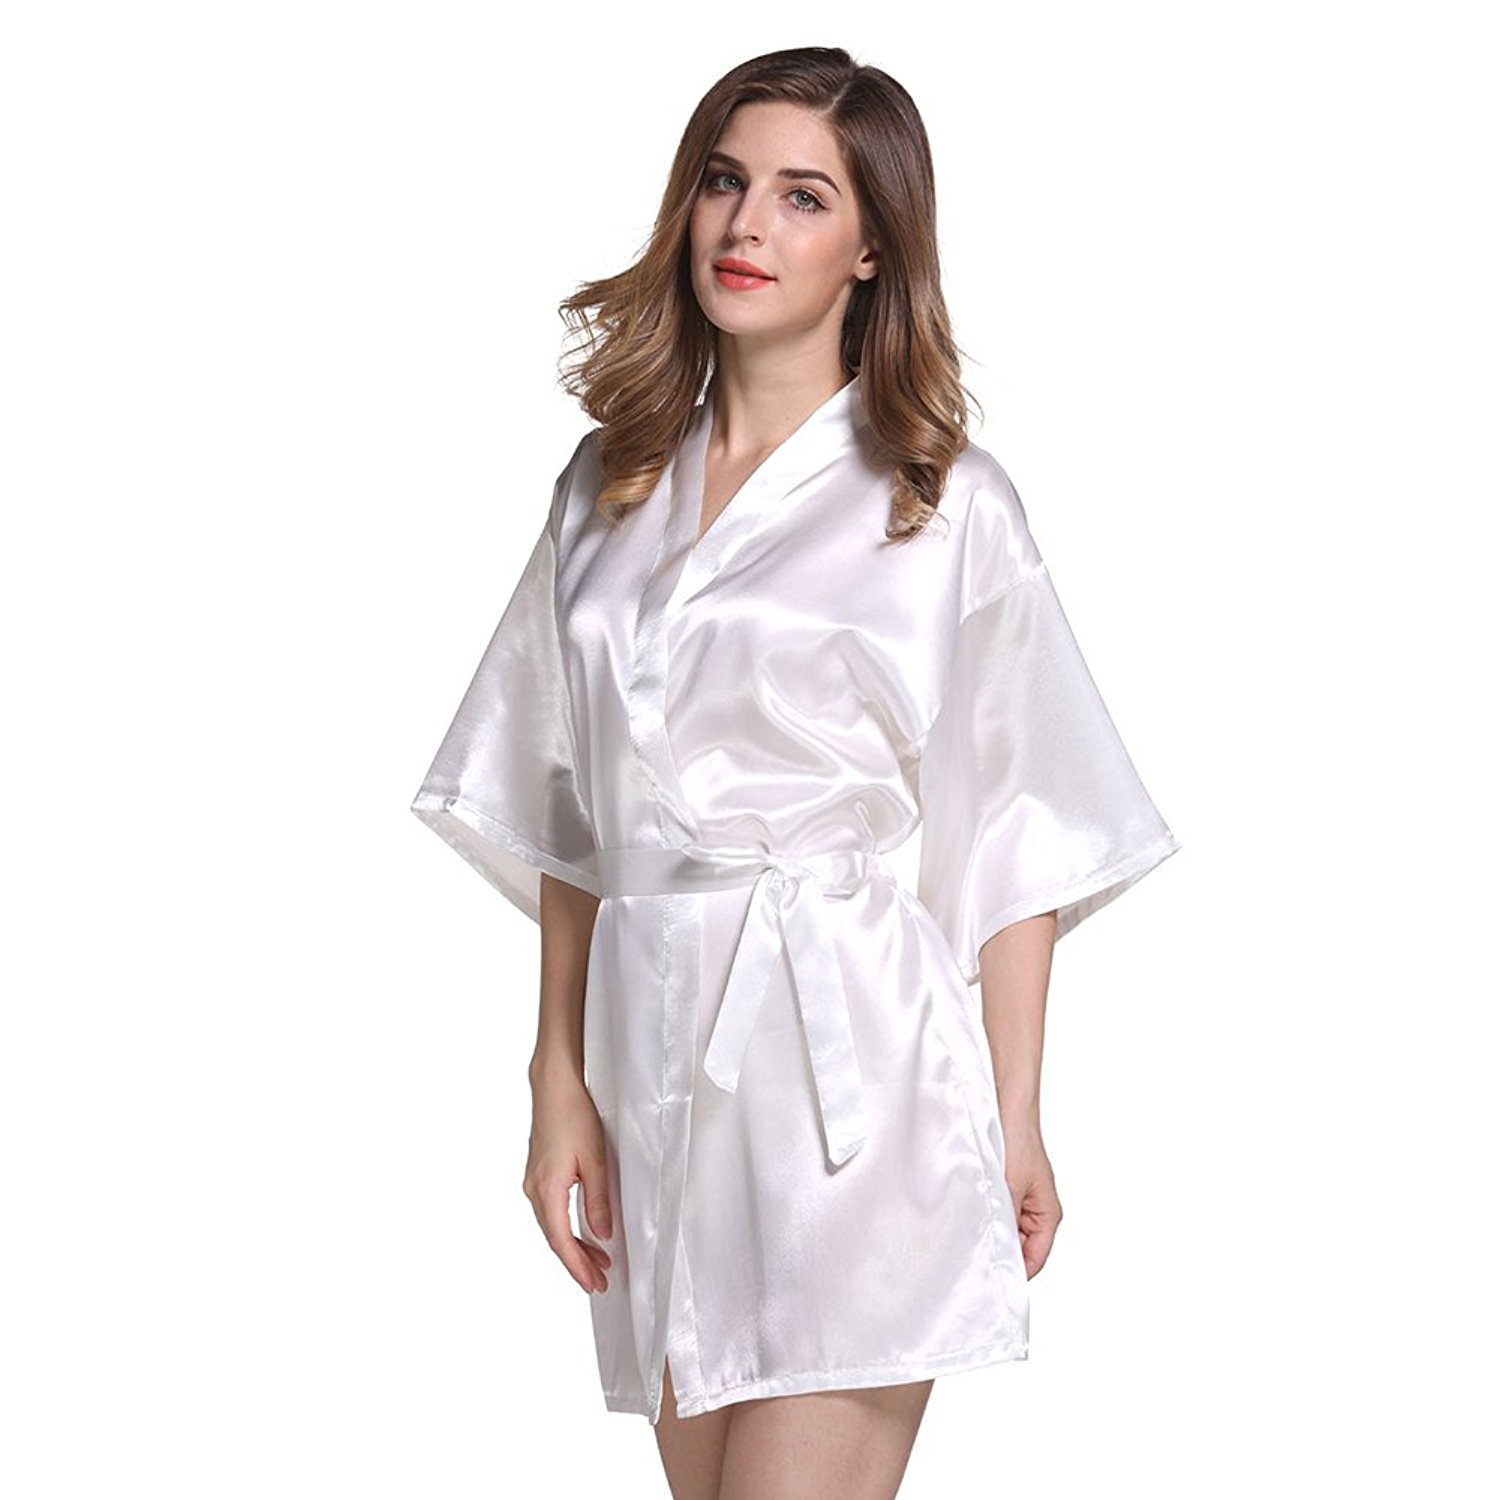 a2646f821c Get Quotations · Amurleopard Womens Kimono Robe Knee Length Bridal Lingerie  Sleepwear Pure Colour Short Satin Robe White M